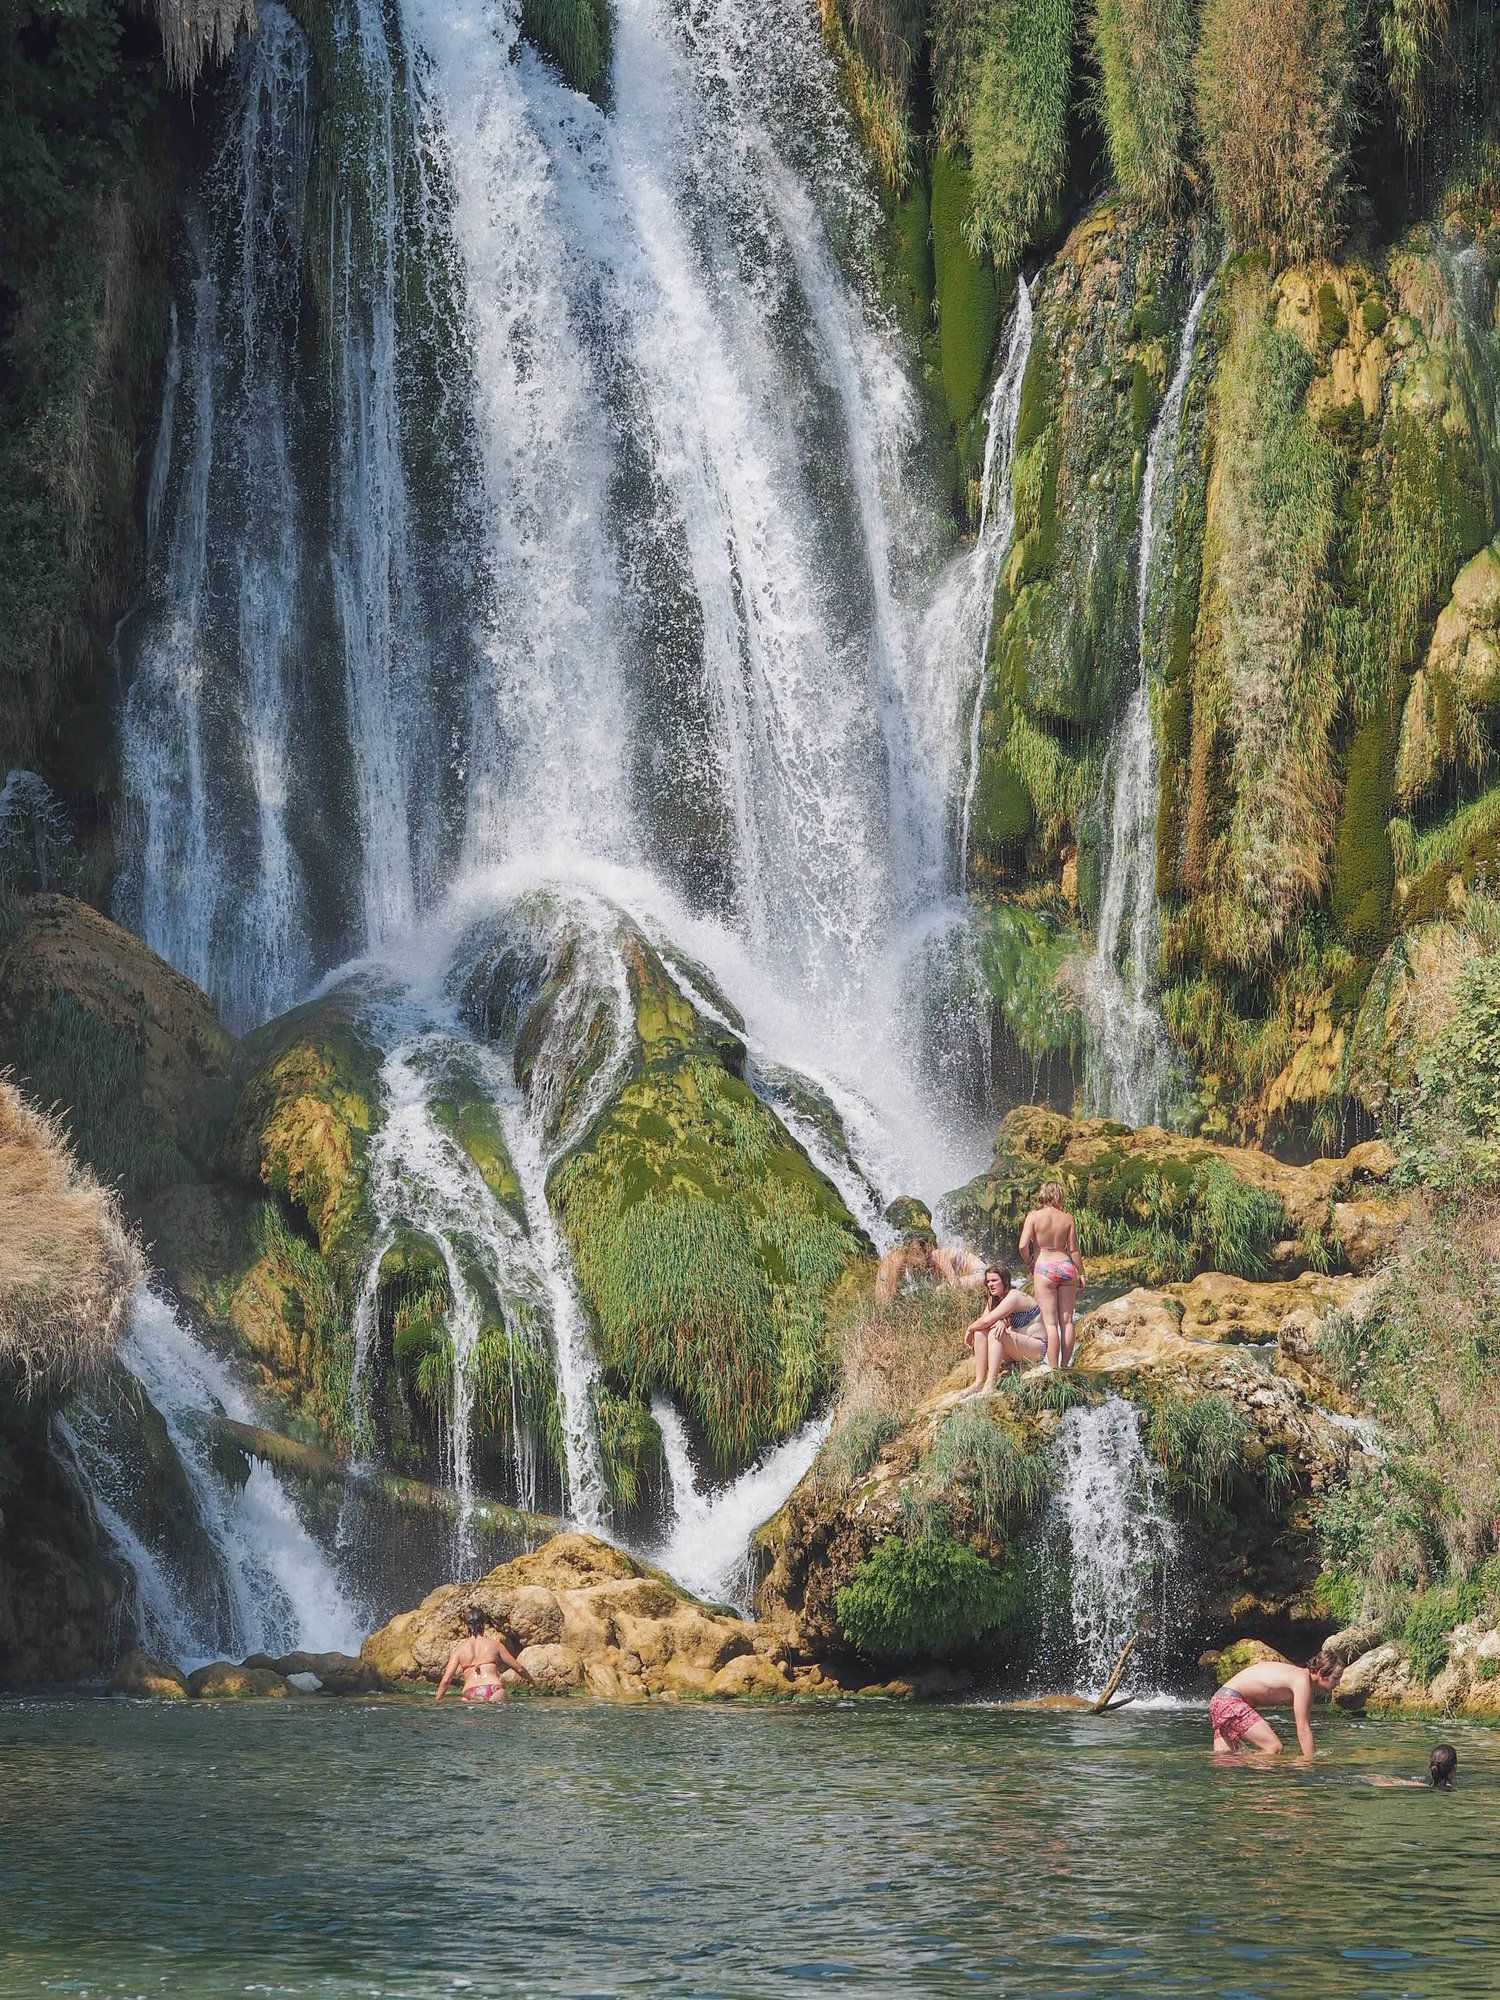 A Day Trip From Dubrovnik To Kravice Waterfalls In Bosnia Herzegovina Eastern Europe Travel Europe Travel Day Trips